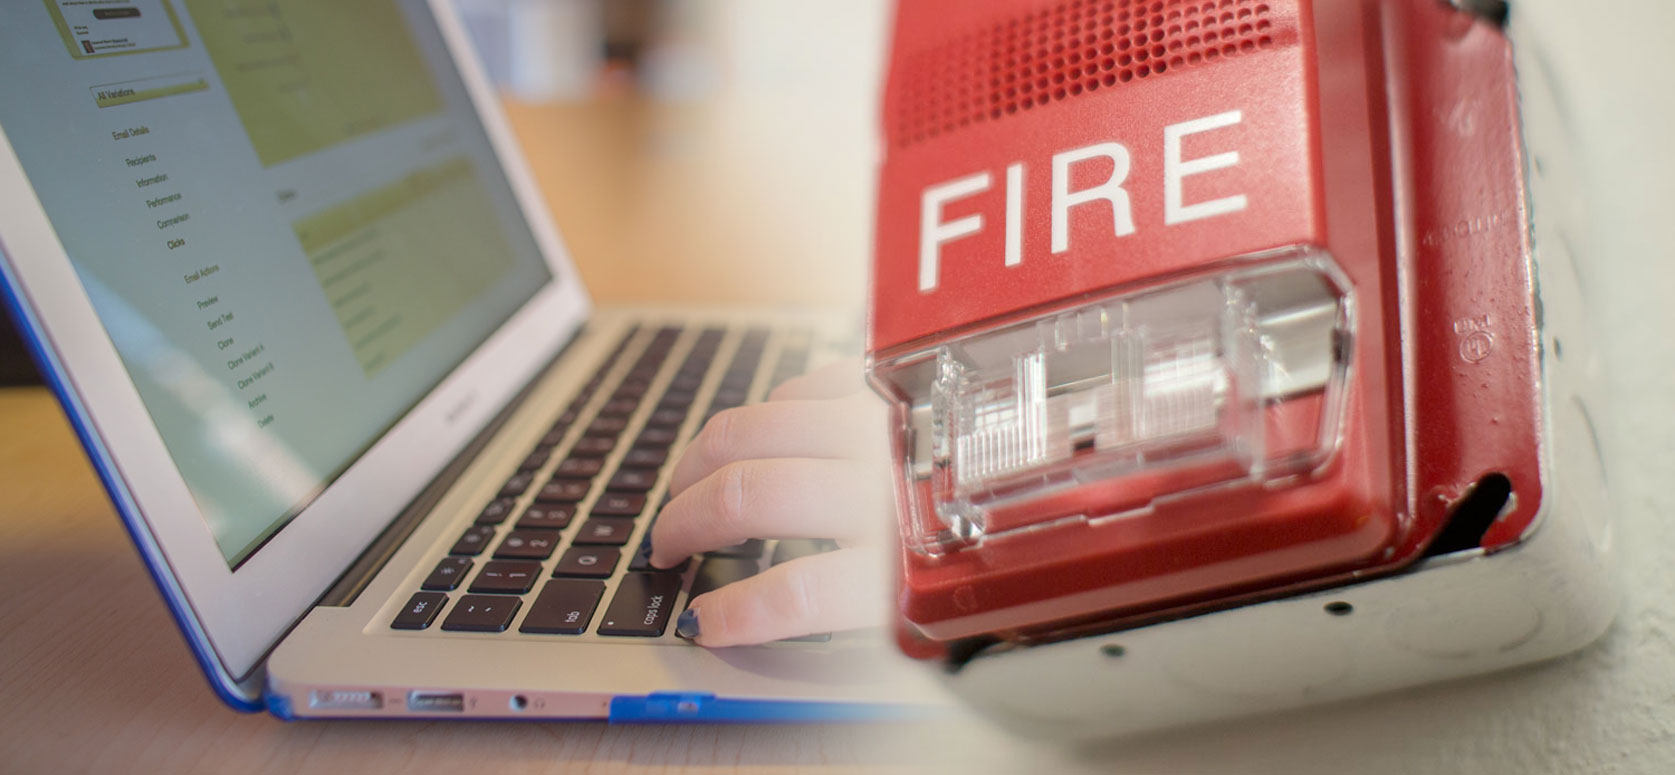 Laptop keyboard, screen and fire alarm